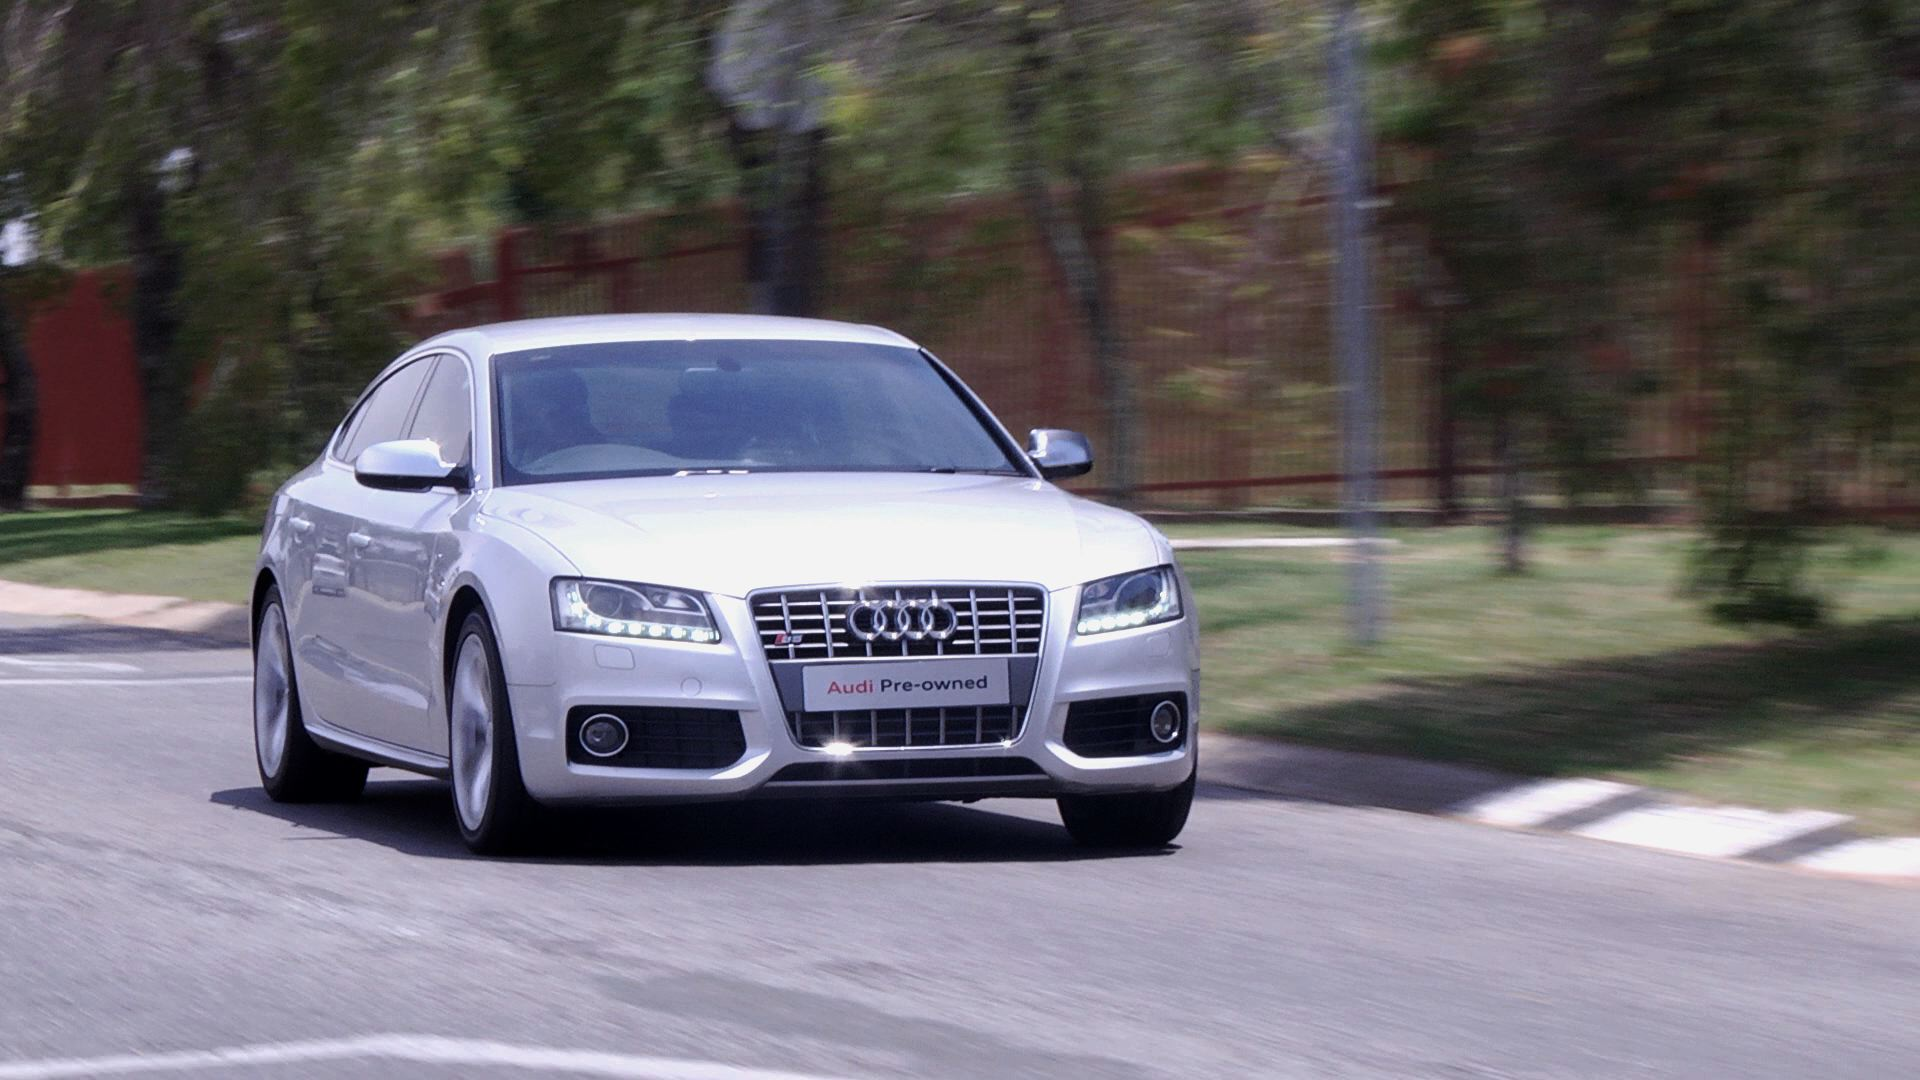 Audi S5 Sportback (2011): Used Car Review – Surf4cars